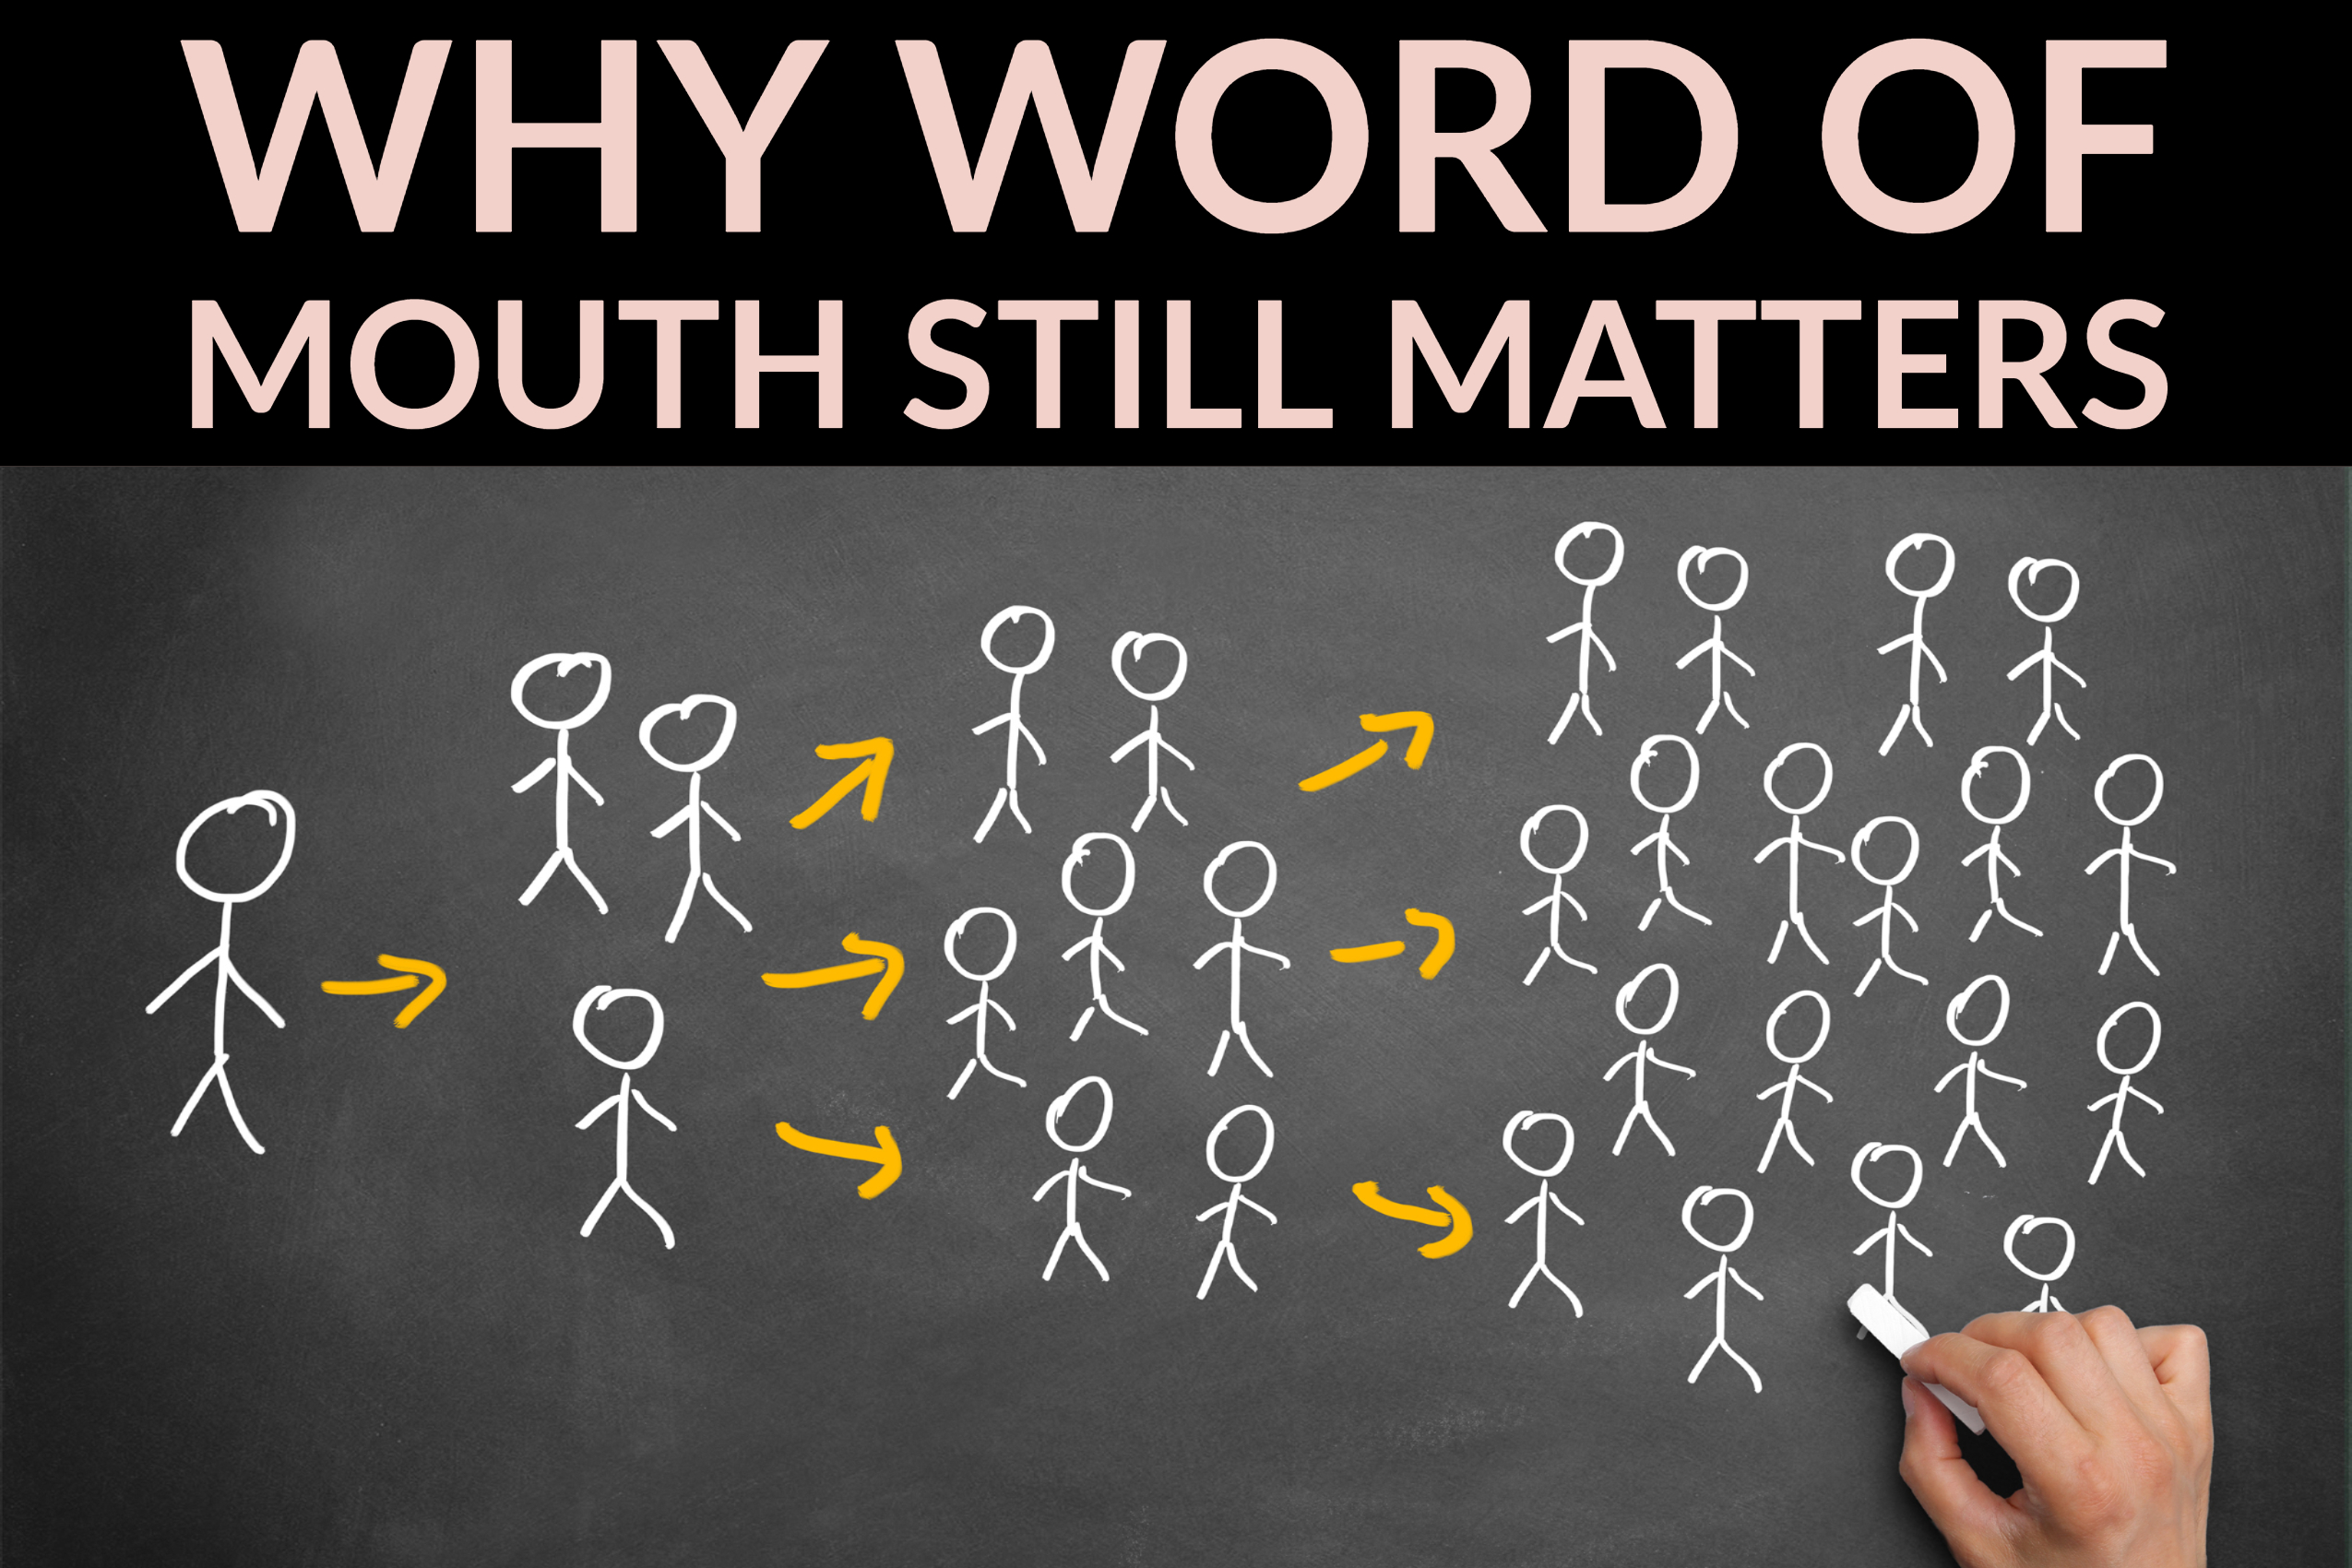 Why Word Of Mouth Still Matters